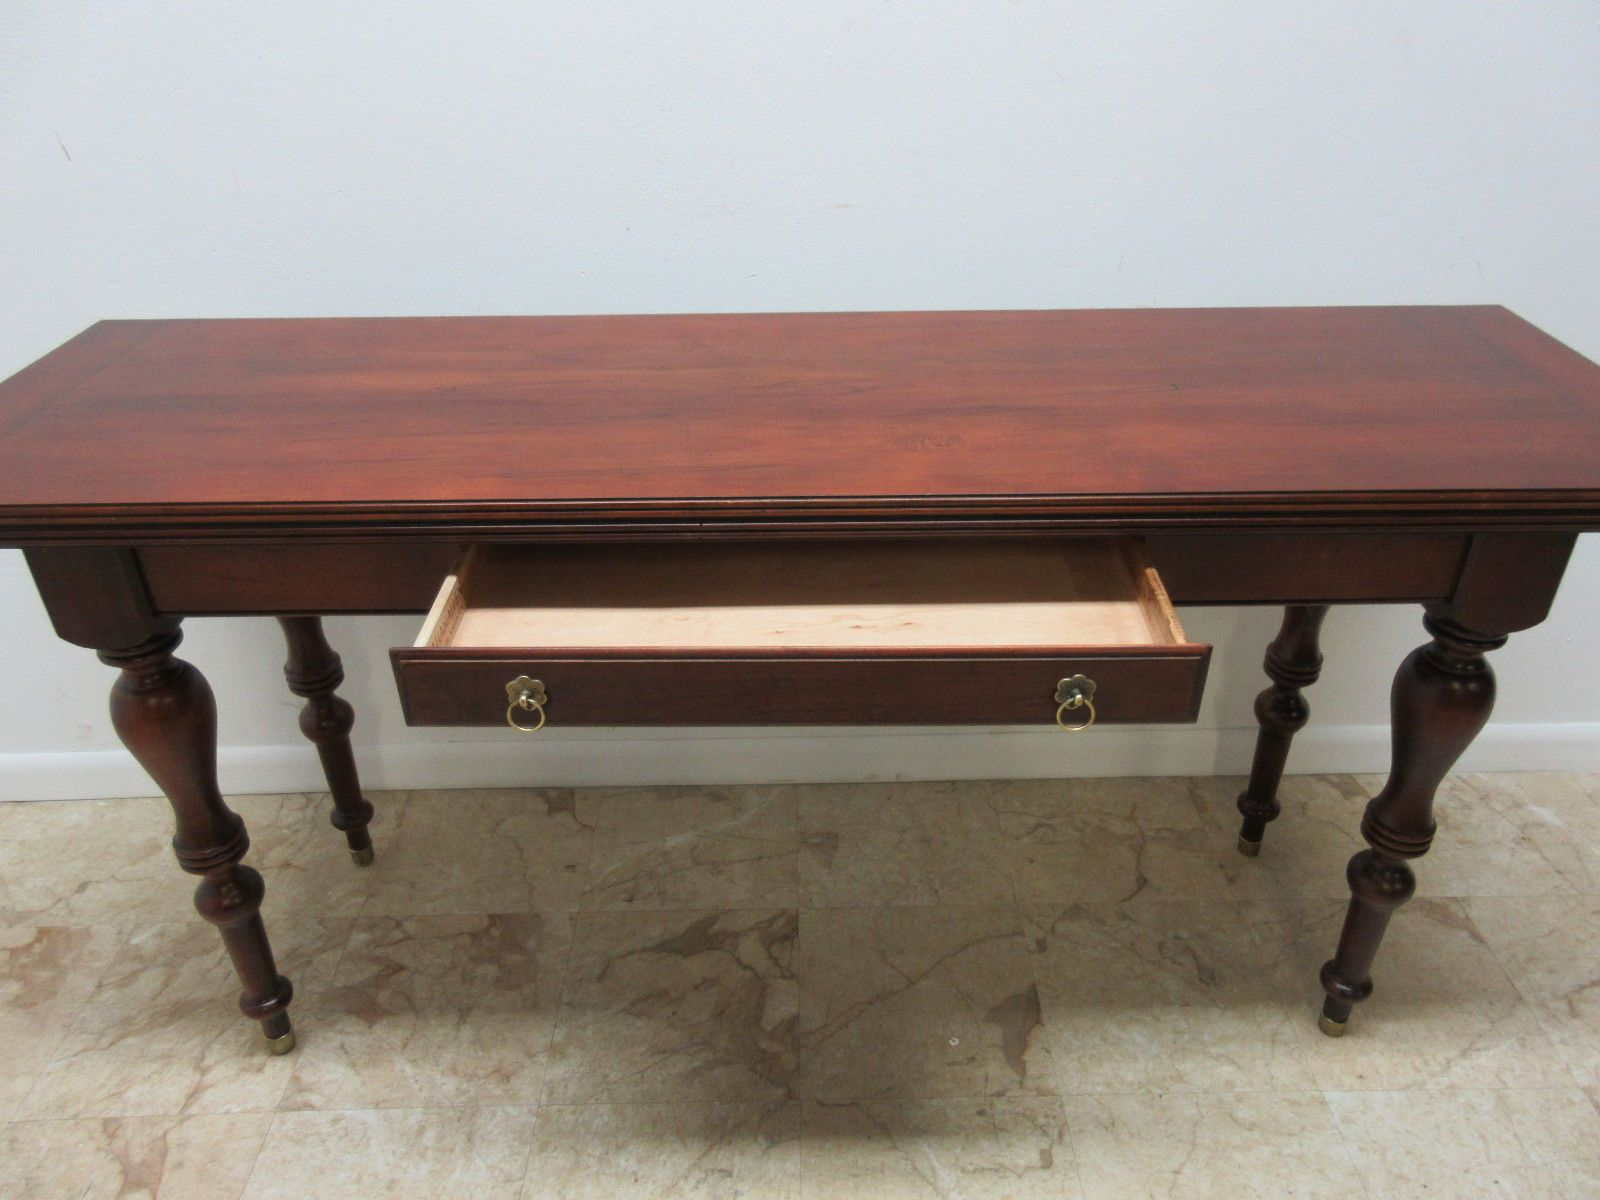 pinginger marie on for sale: ethan allen british classics